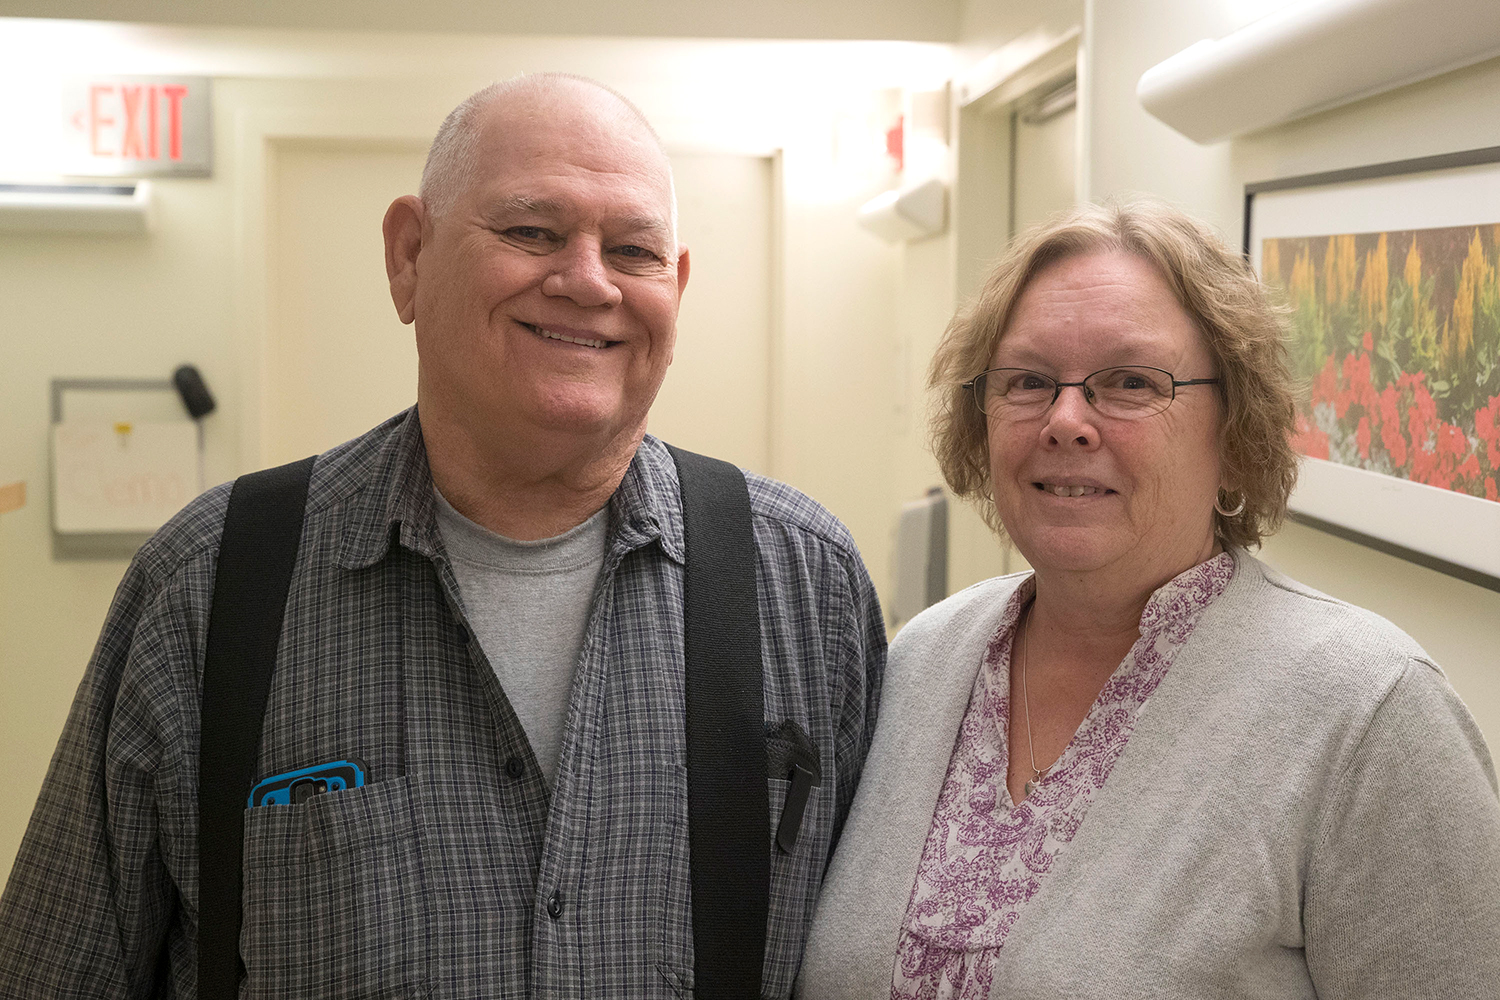 Gordonsville resident Leo Kingrea (left) and his partner, Venna Wiest, say the UVA Health System's Patient-Student Partnership has been a big help. (Photo by Dan Addison, University Communications)